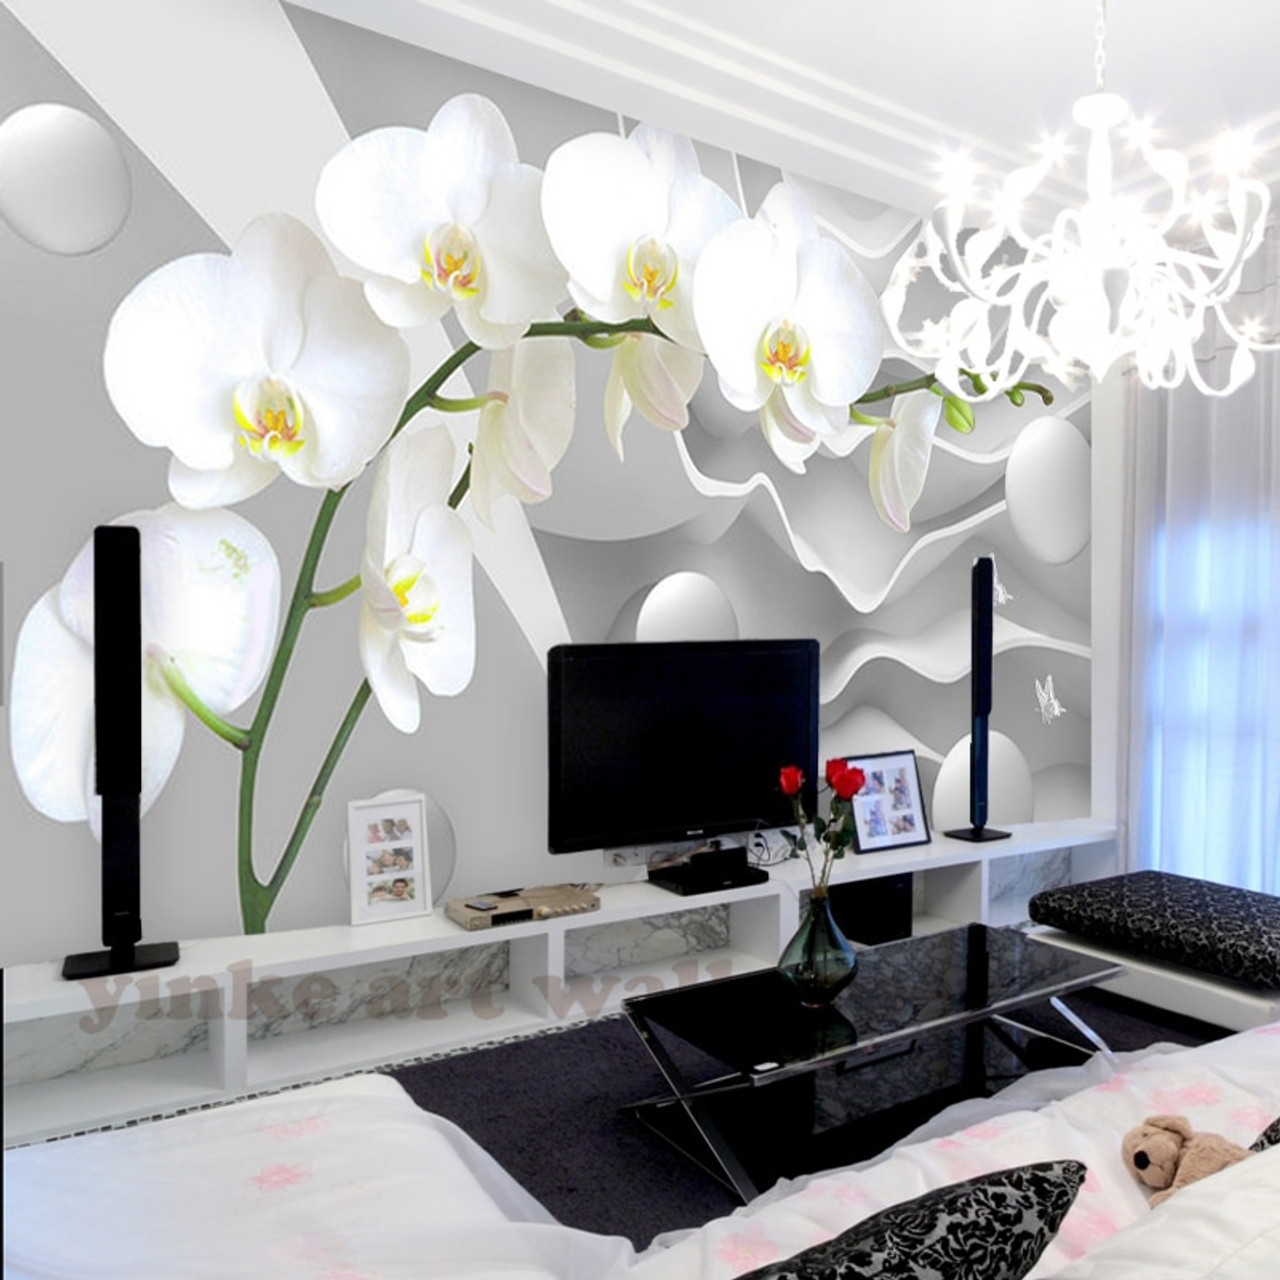 custom 3d stereoscopic wallpaper space butterfly orchid ball wallpaper  modern living room bedroom 3D wallpapers large mural